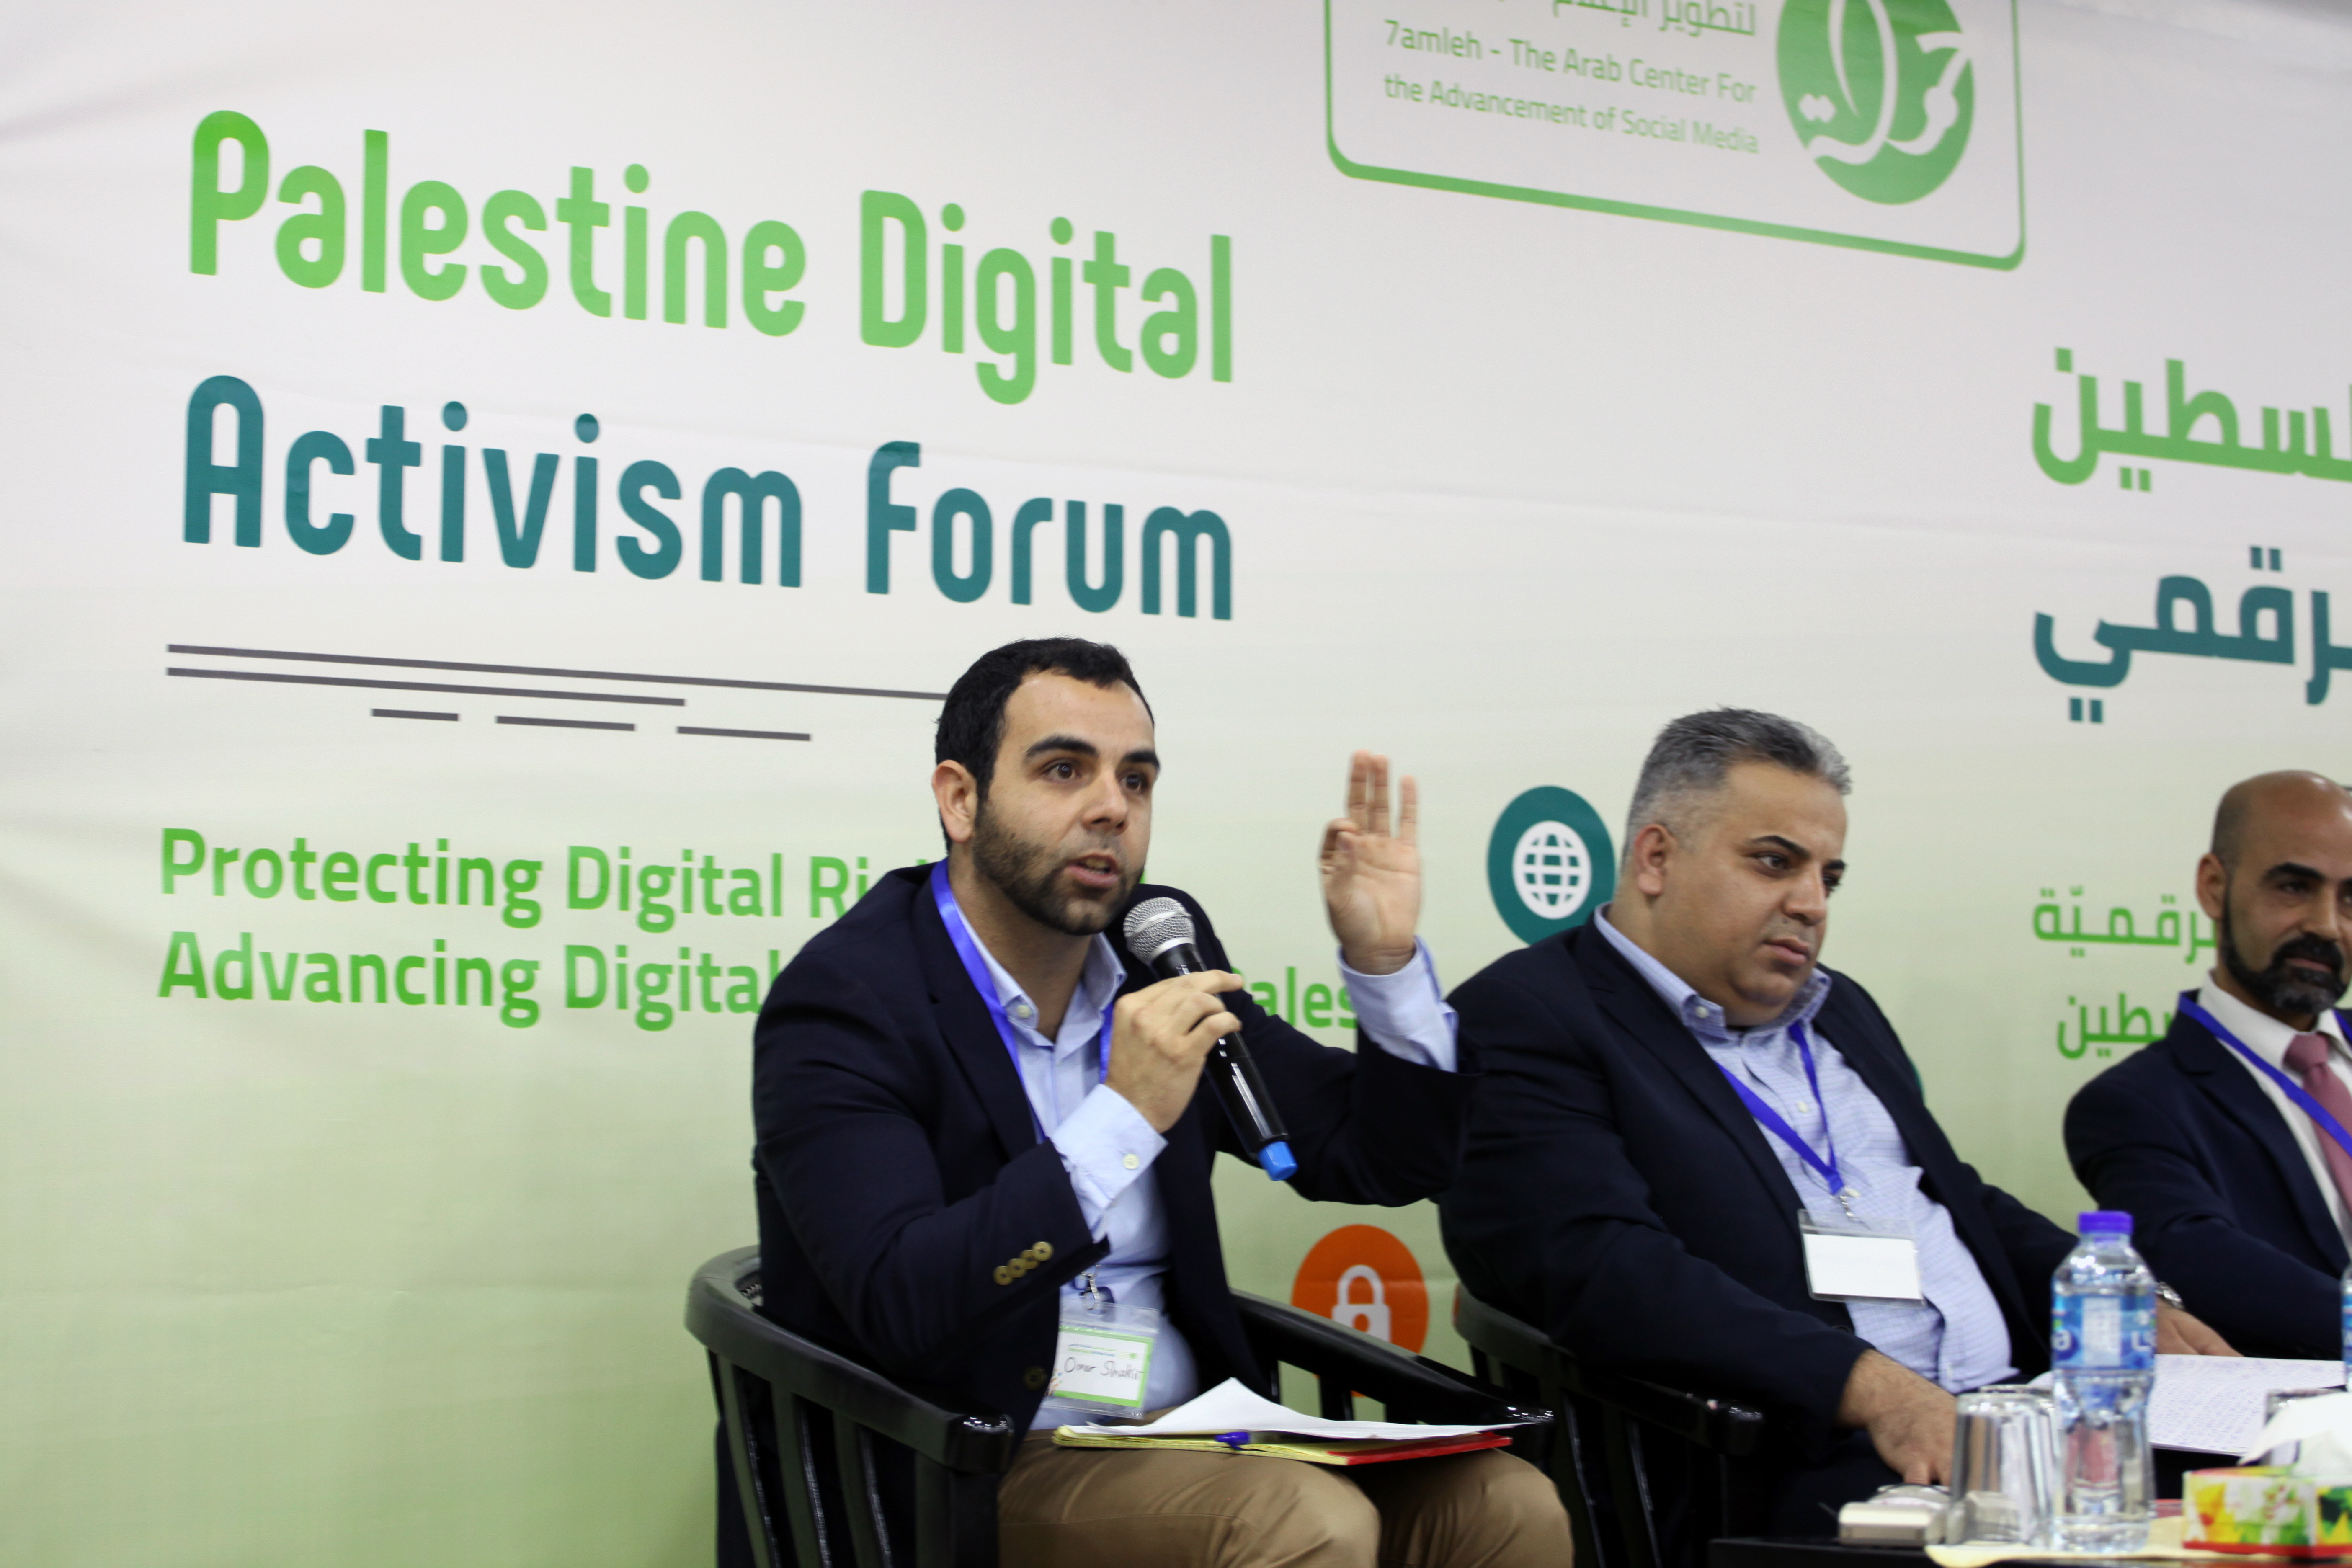 Omar Shakir, Israel and Palestine Director at Human Rights Watch speaks at 7amleh's Palestine Digital Activism Forum, Ramallah, West Bank, January 18, 2018. (Courtesy of 7amleh)